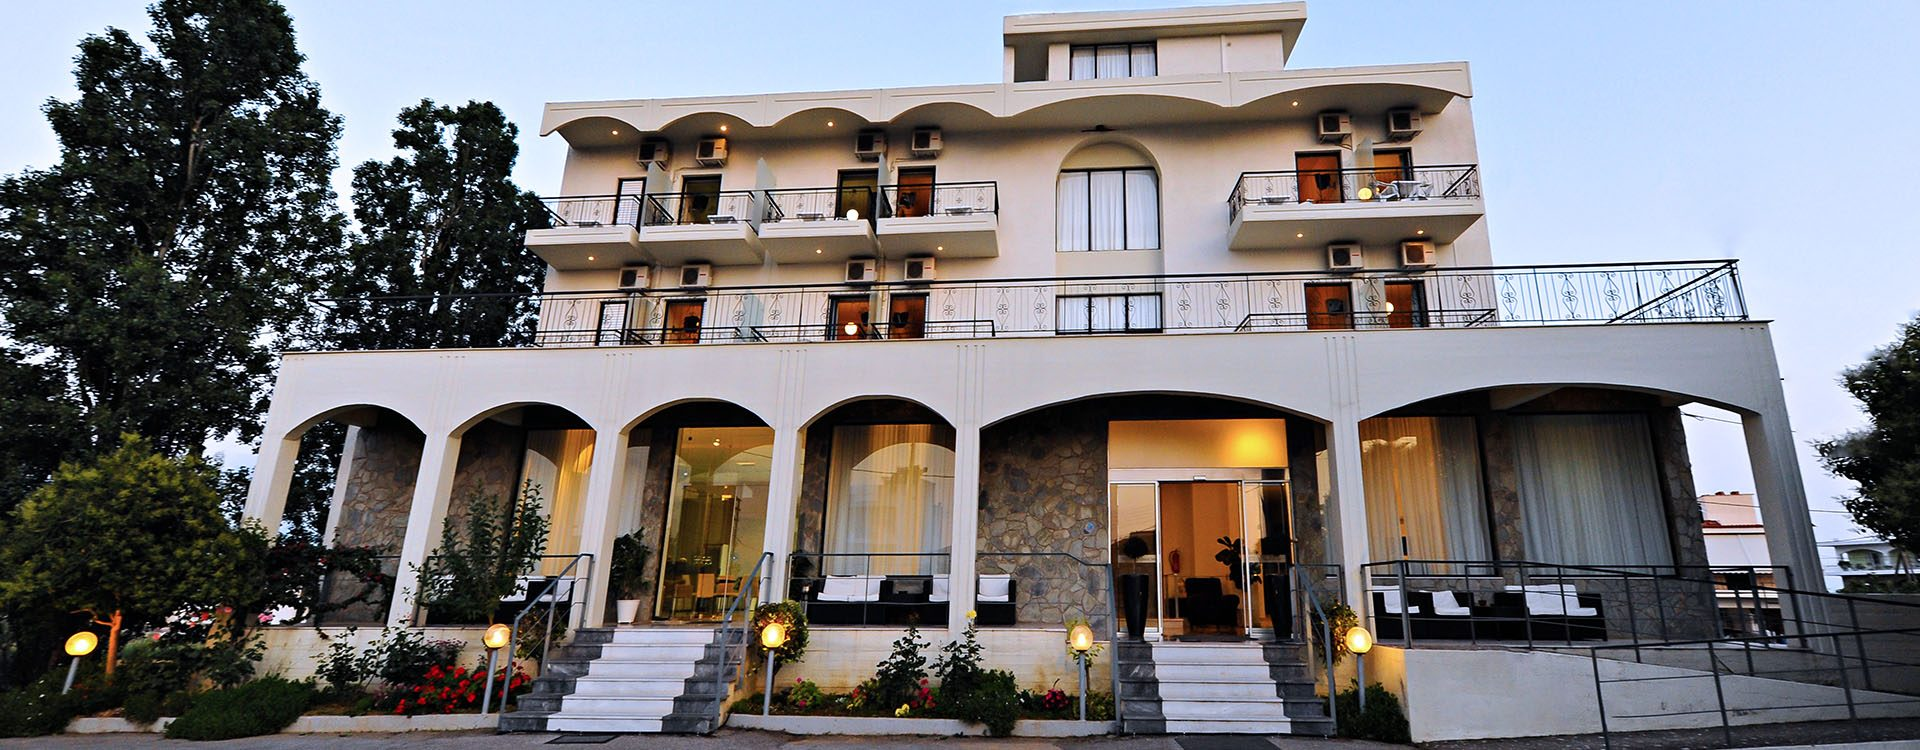 hotels messinia greece | Kleopatra Inn Hotel